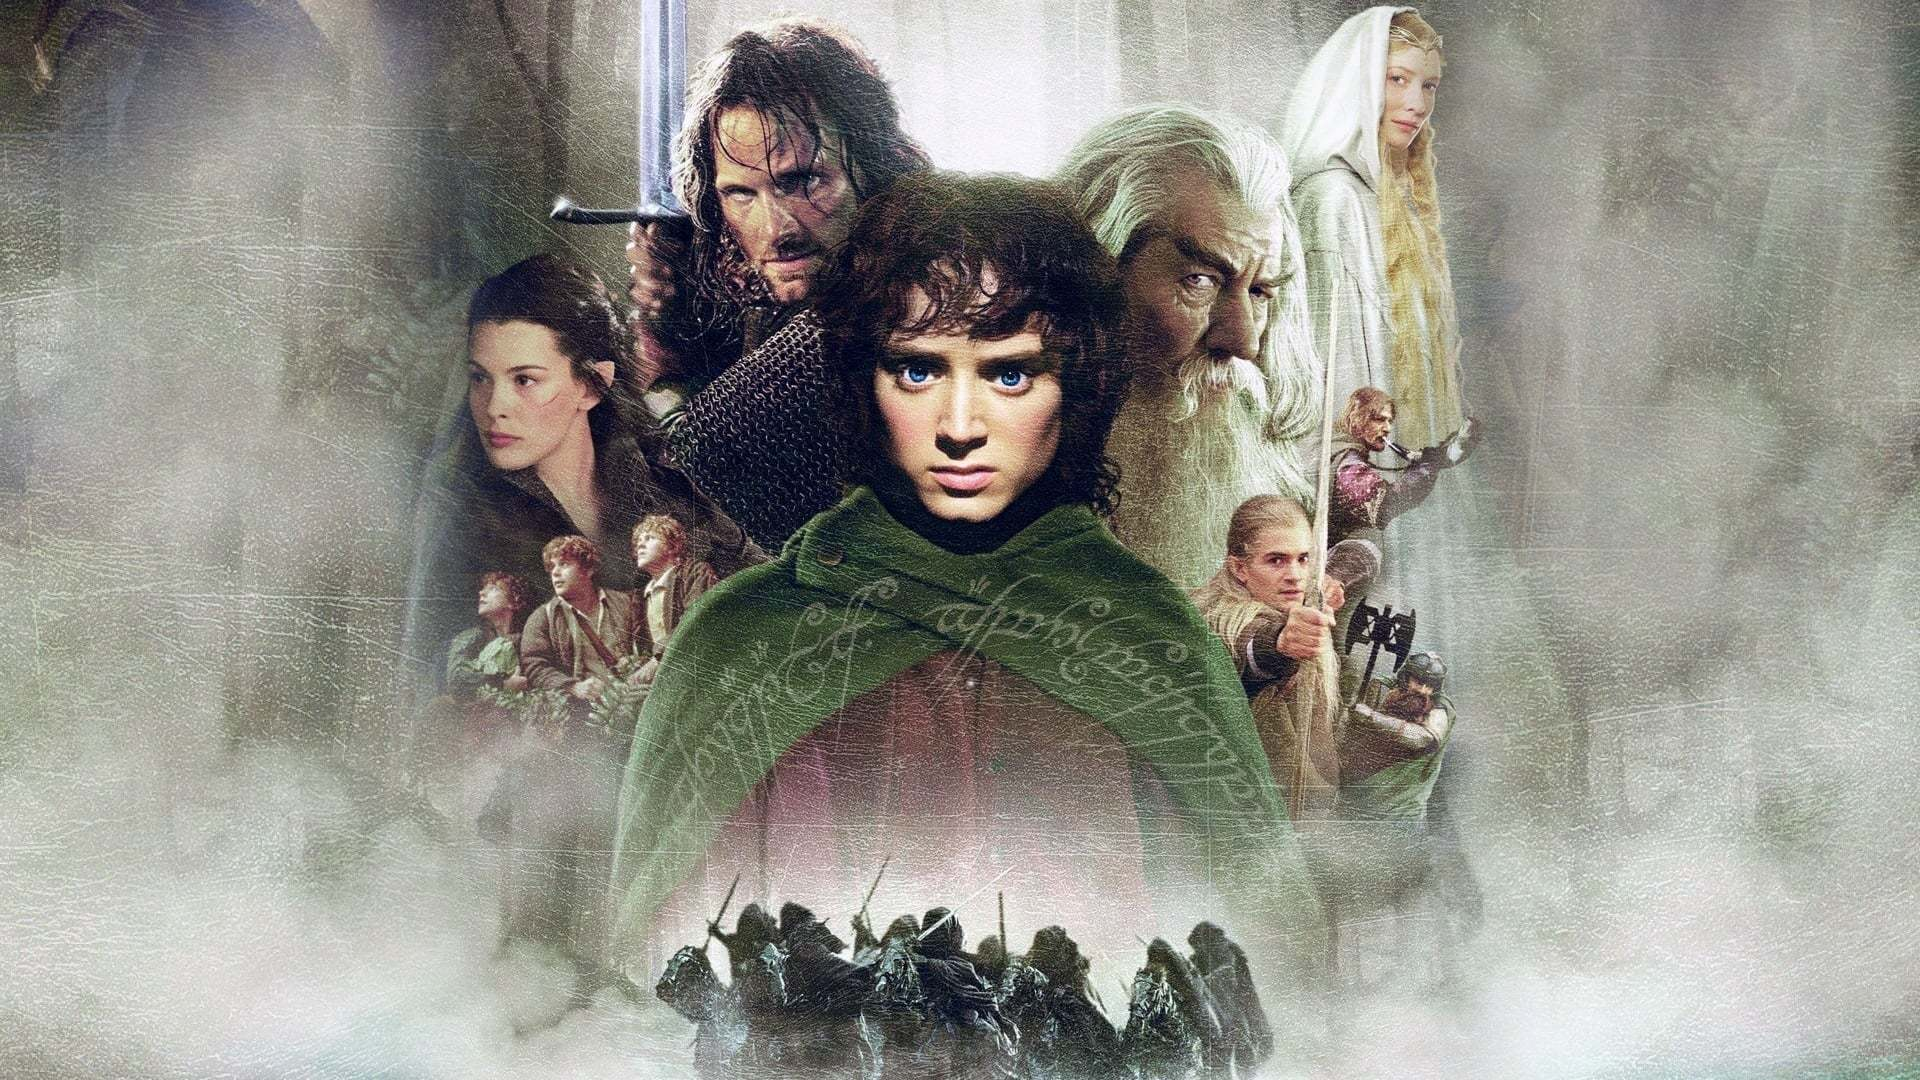 Кадры из фильма Властелин колец: Братство кольца The Lord of the Rings: The Fellowship of the Ring 2001